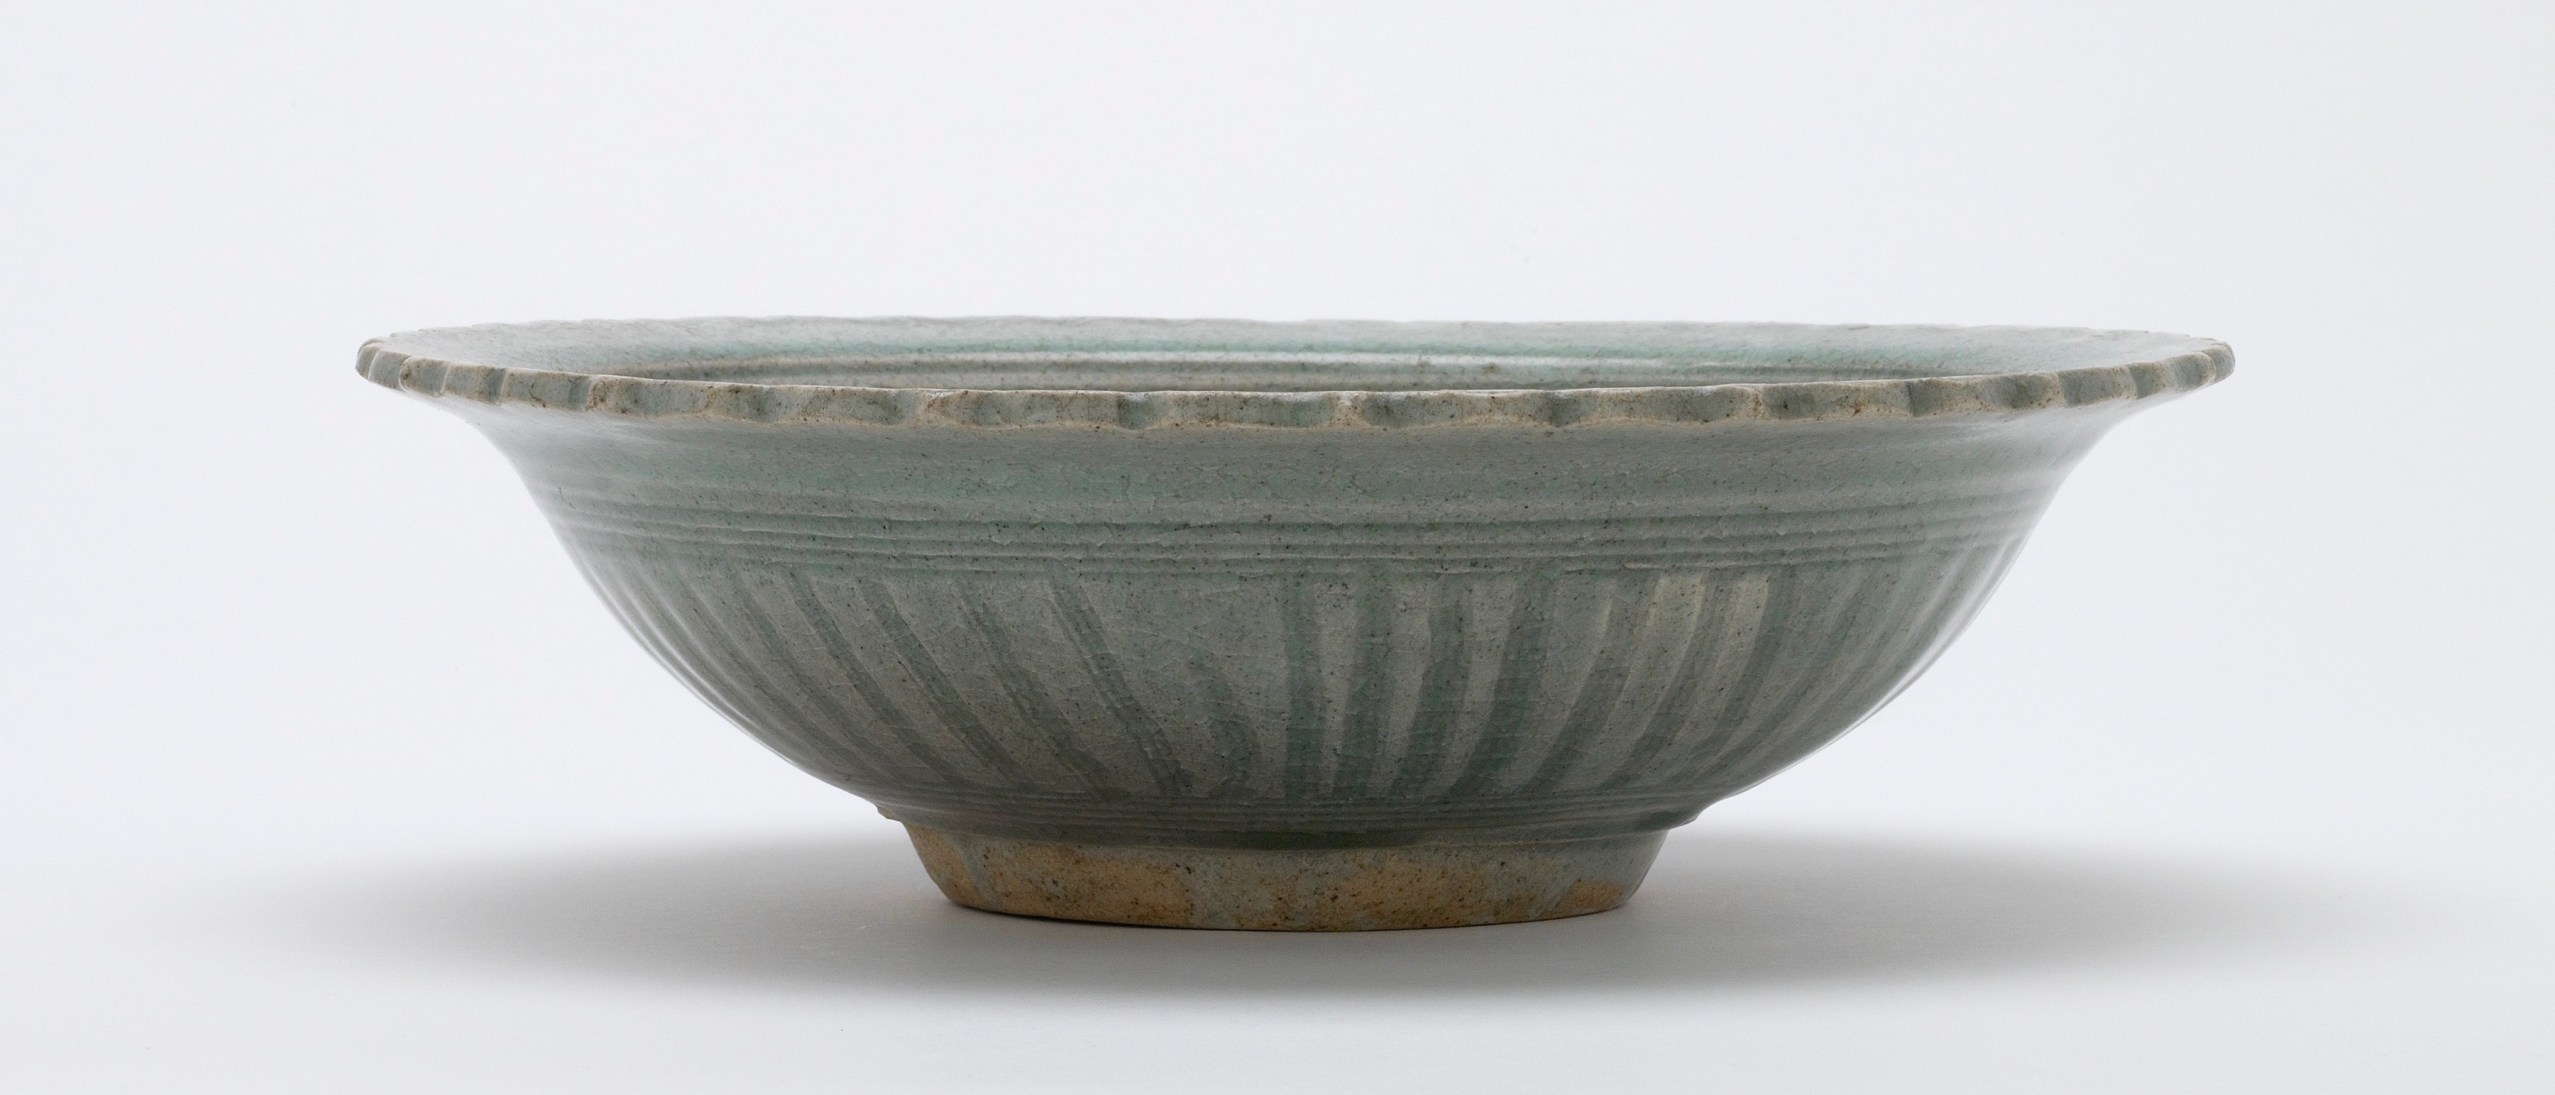 Stone bowl with celadon (pale blue-green) glaze; decorated with incisions and carvings